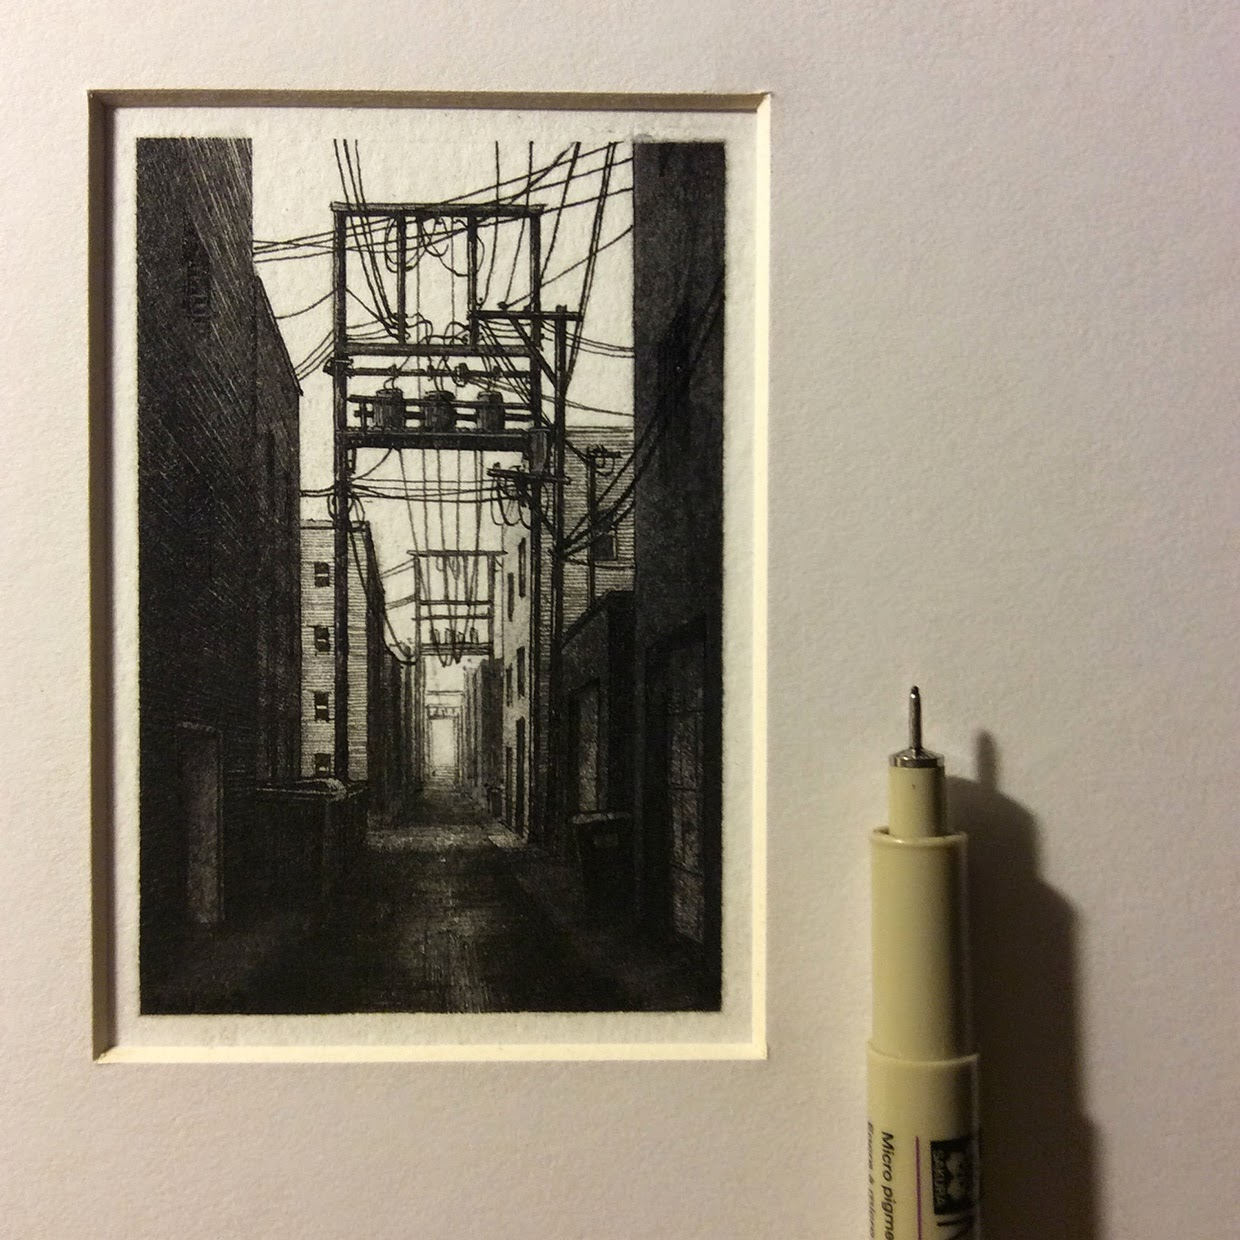 08-Taylor-Mazerhas-Miniature-Pencil-and-Ink-Drawings-with-a-lot-of-Detail-www-designstack-co